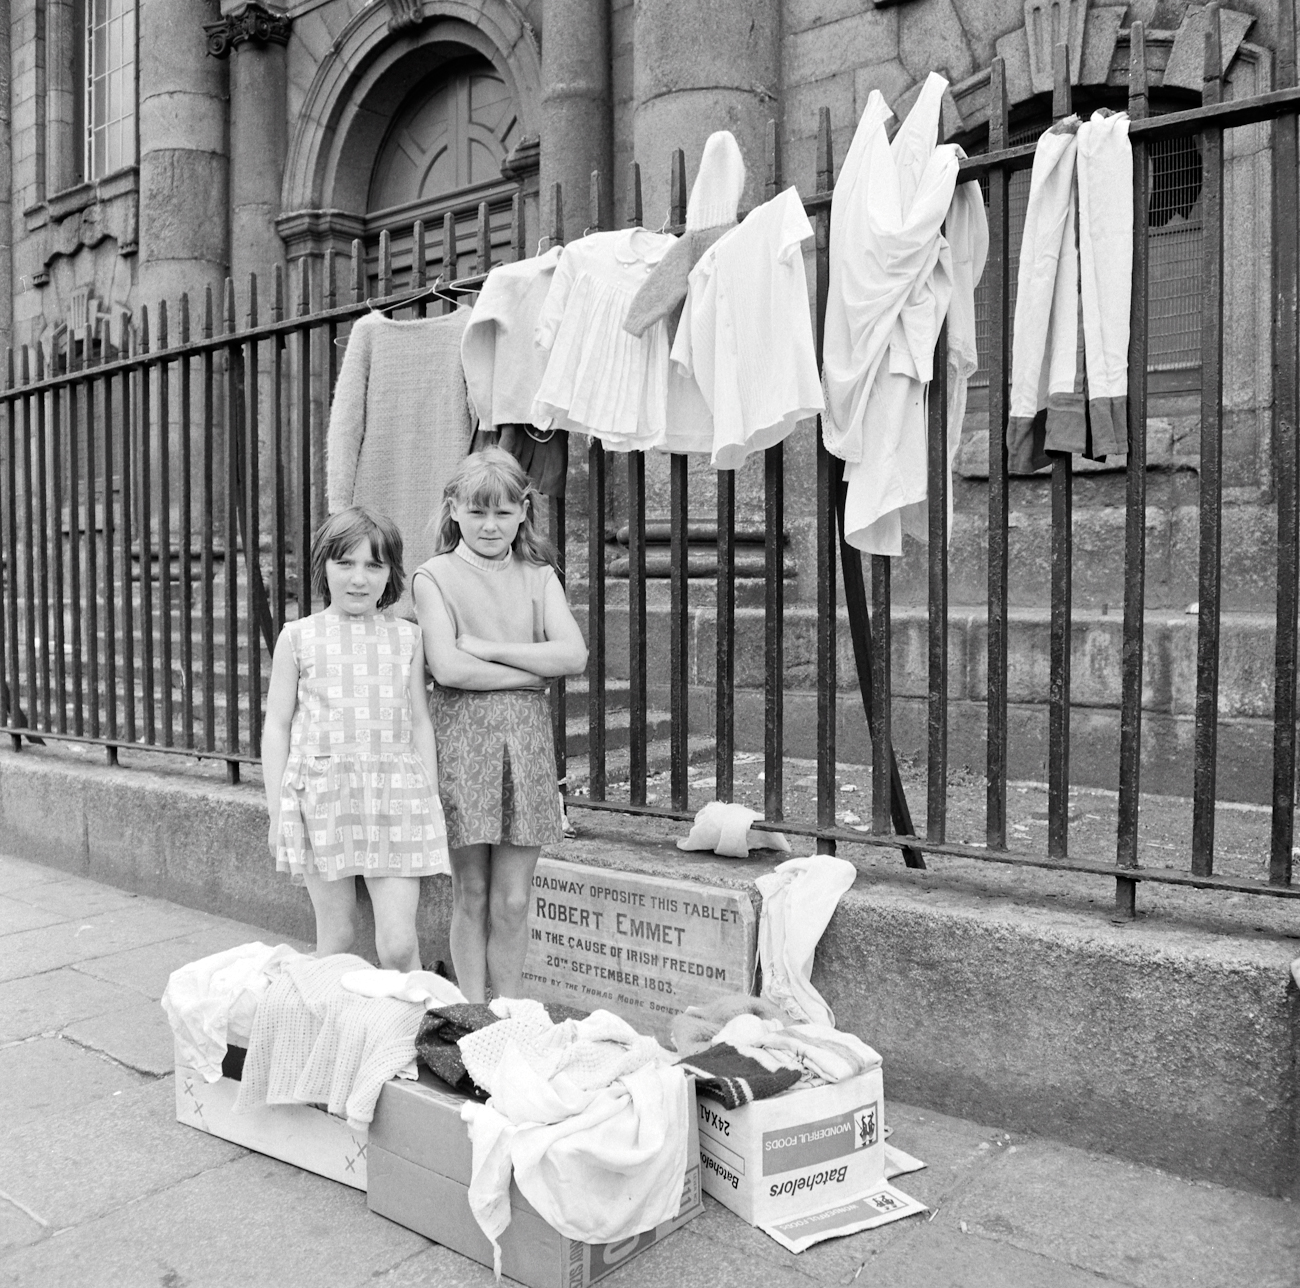 "Ireland 1960s, These two young entrepreneurs had set out their ""stall"" in front of St. Catherine's Church on Thomas Street in Dublin. Said this morning that it would make an old library very happy if these girls could be identified, and we've done it! Thanks to the sister of one of them, we now know these are Elizabeth or Lily Collins on the left, and her friend Angela Arnold on the right... Photographer: Elinor Wiltshire Date: Summer 1969"